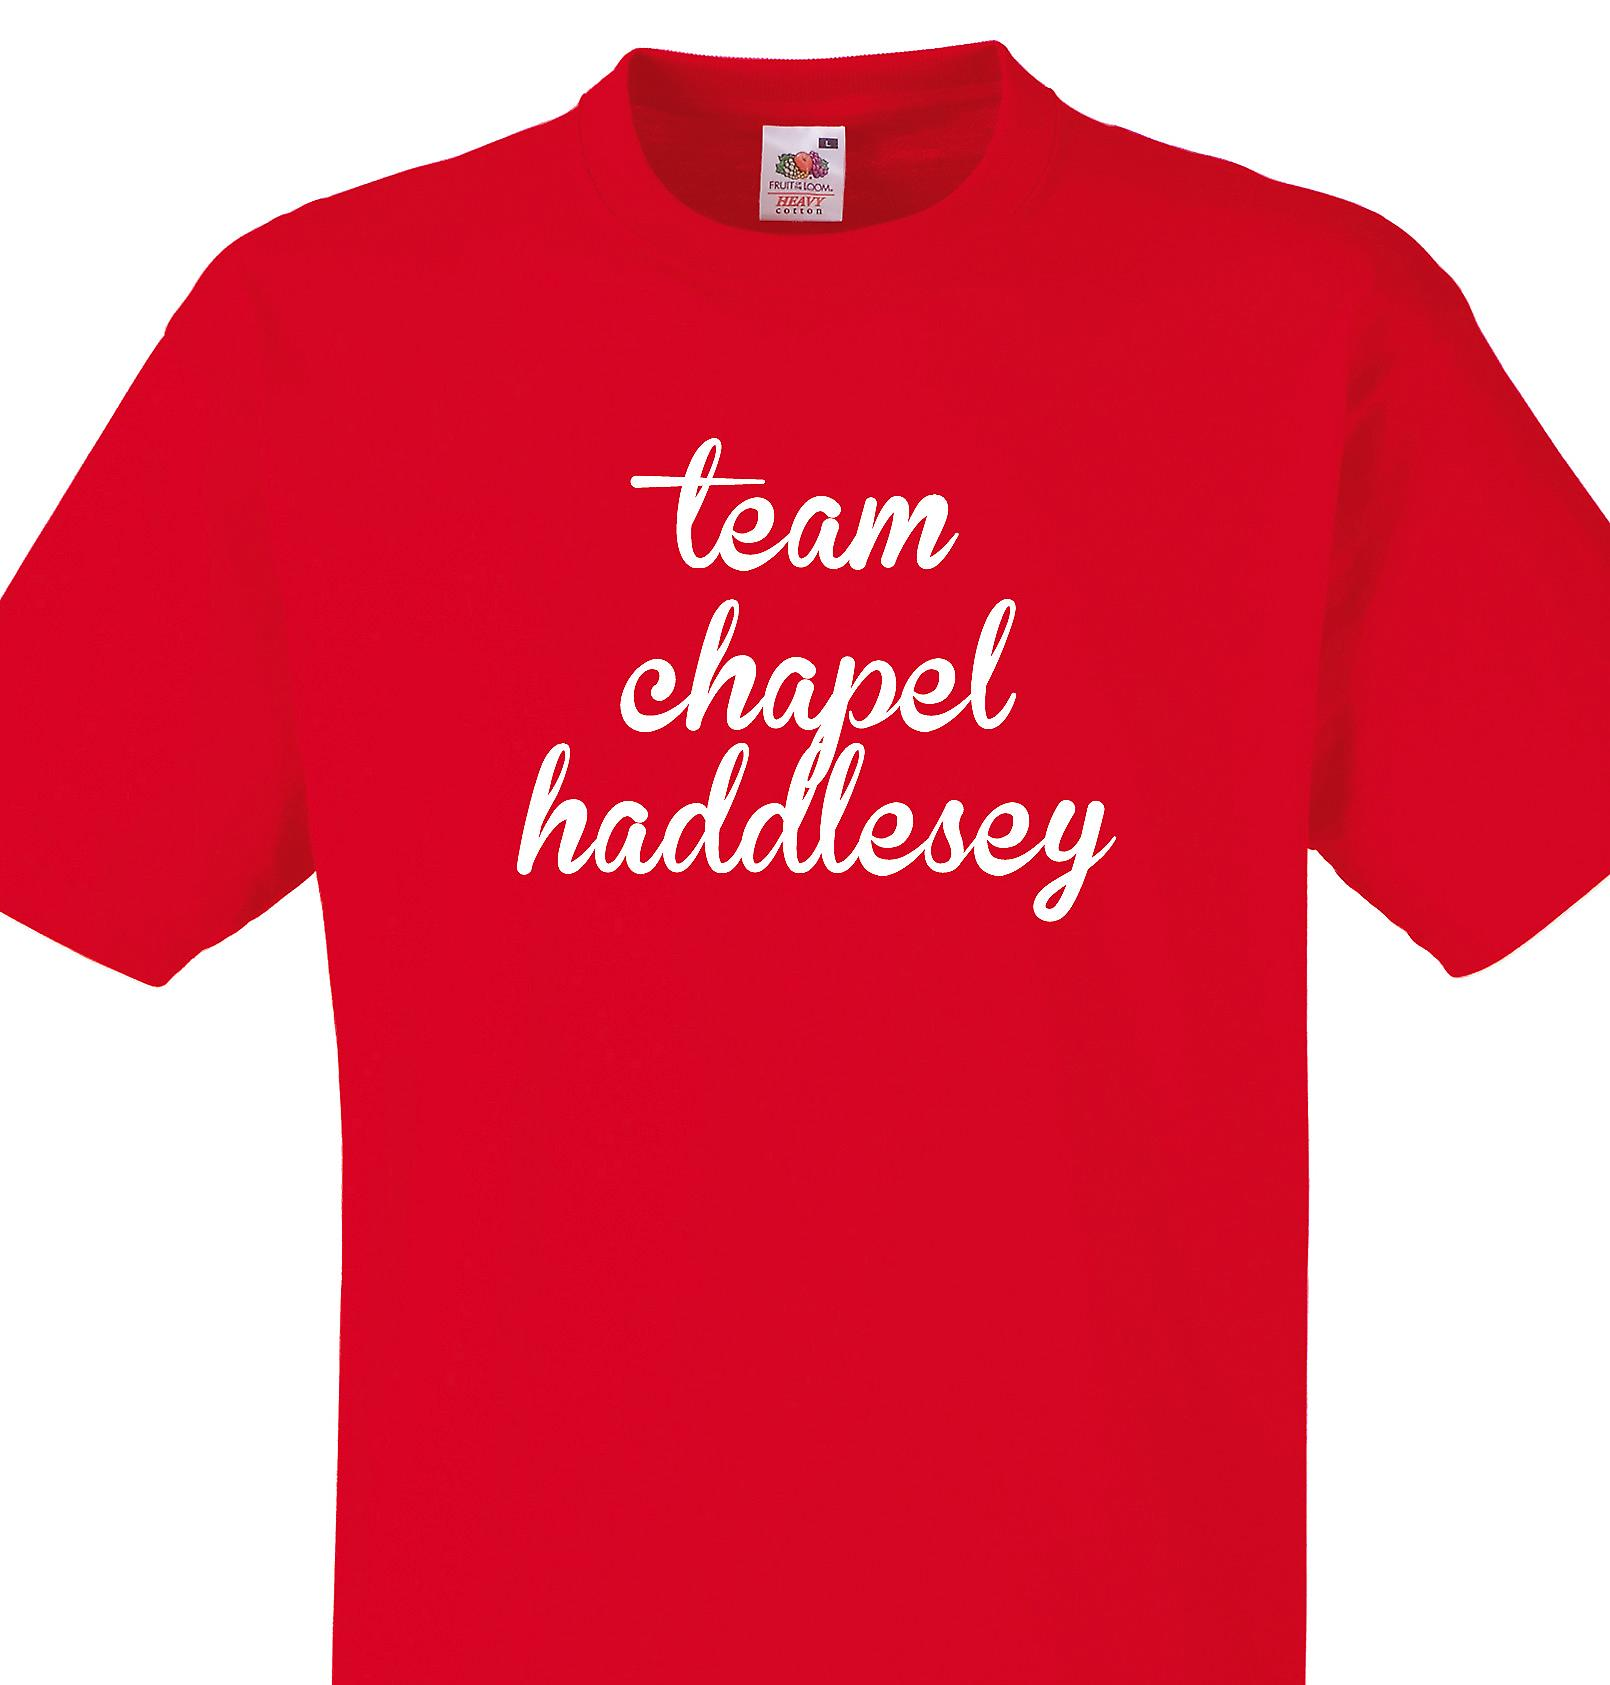 Team Chapel haddlesey Red T shirt